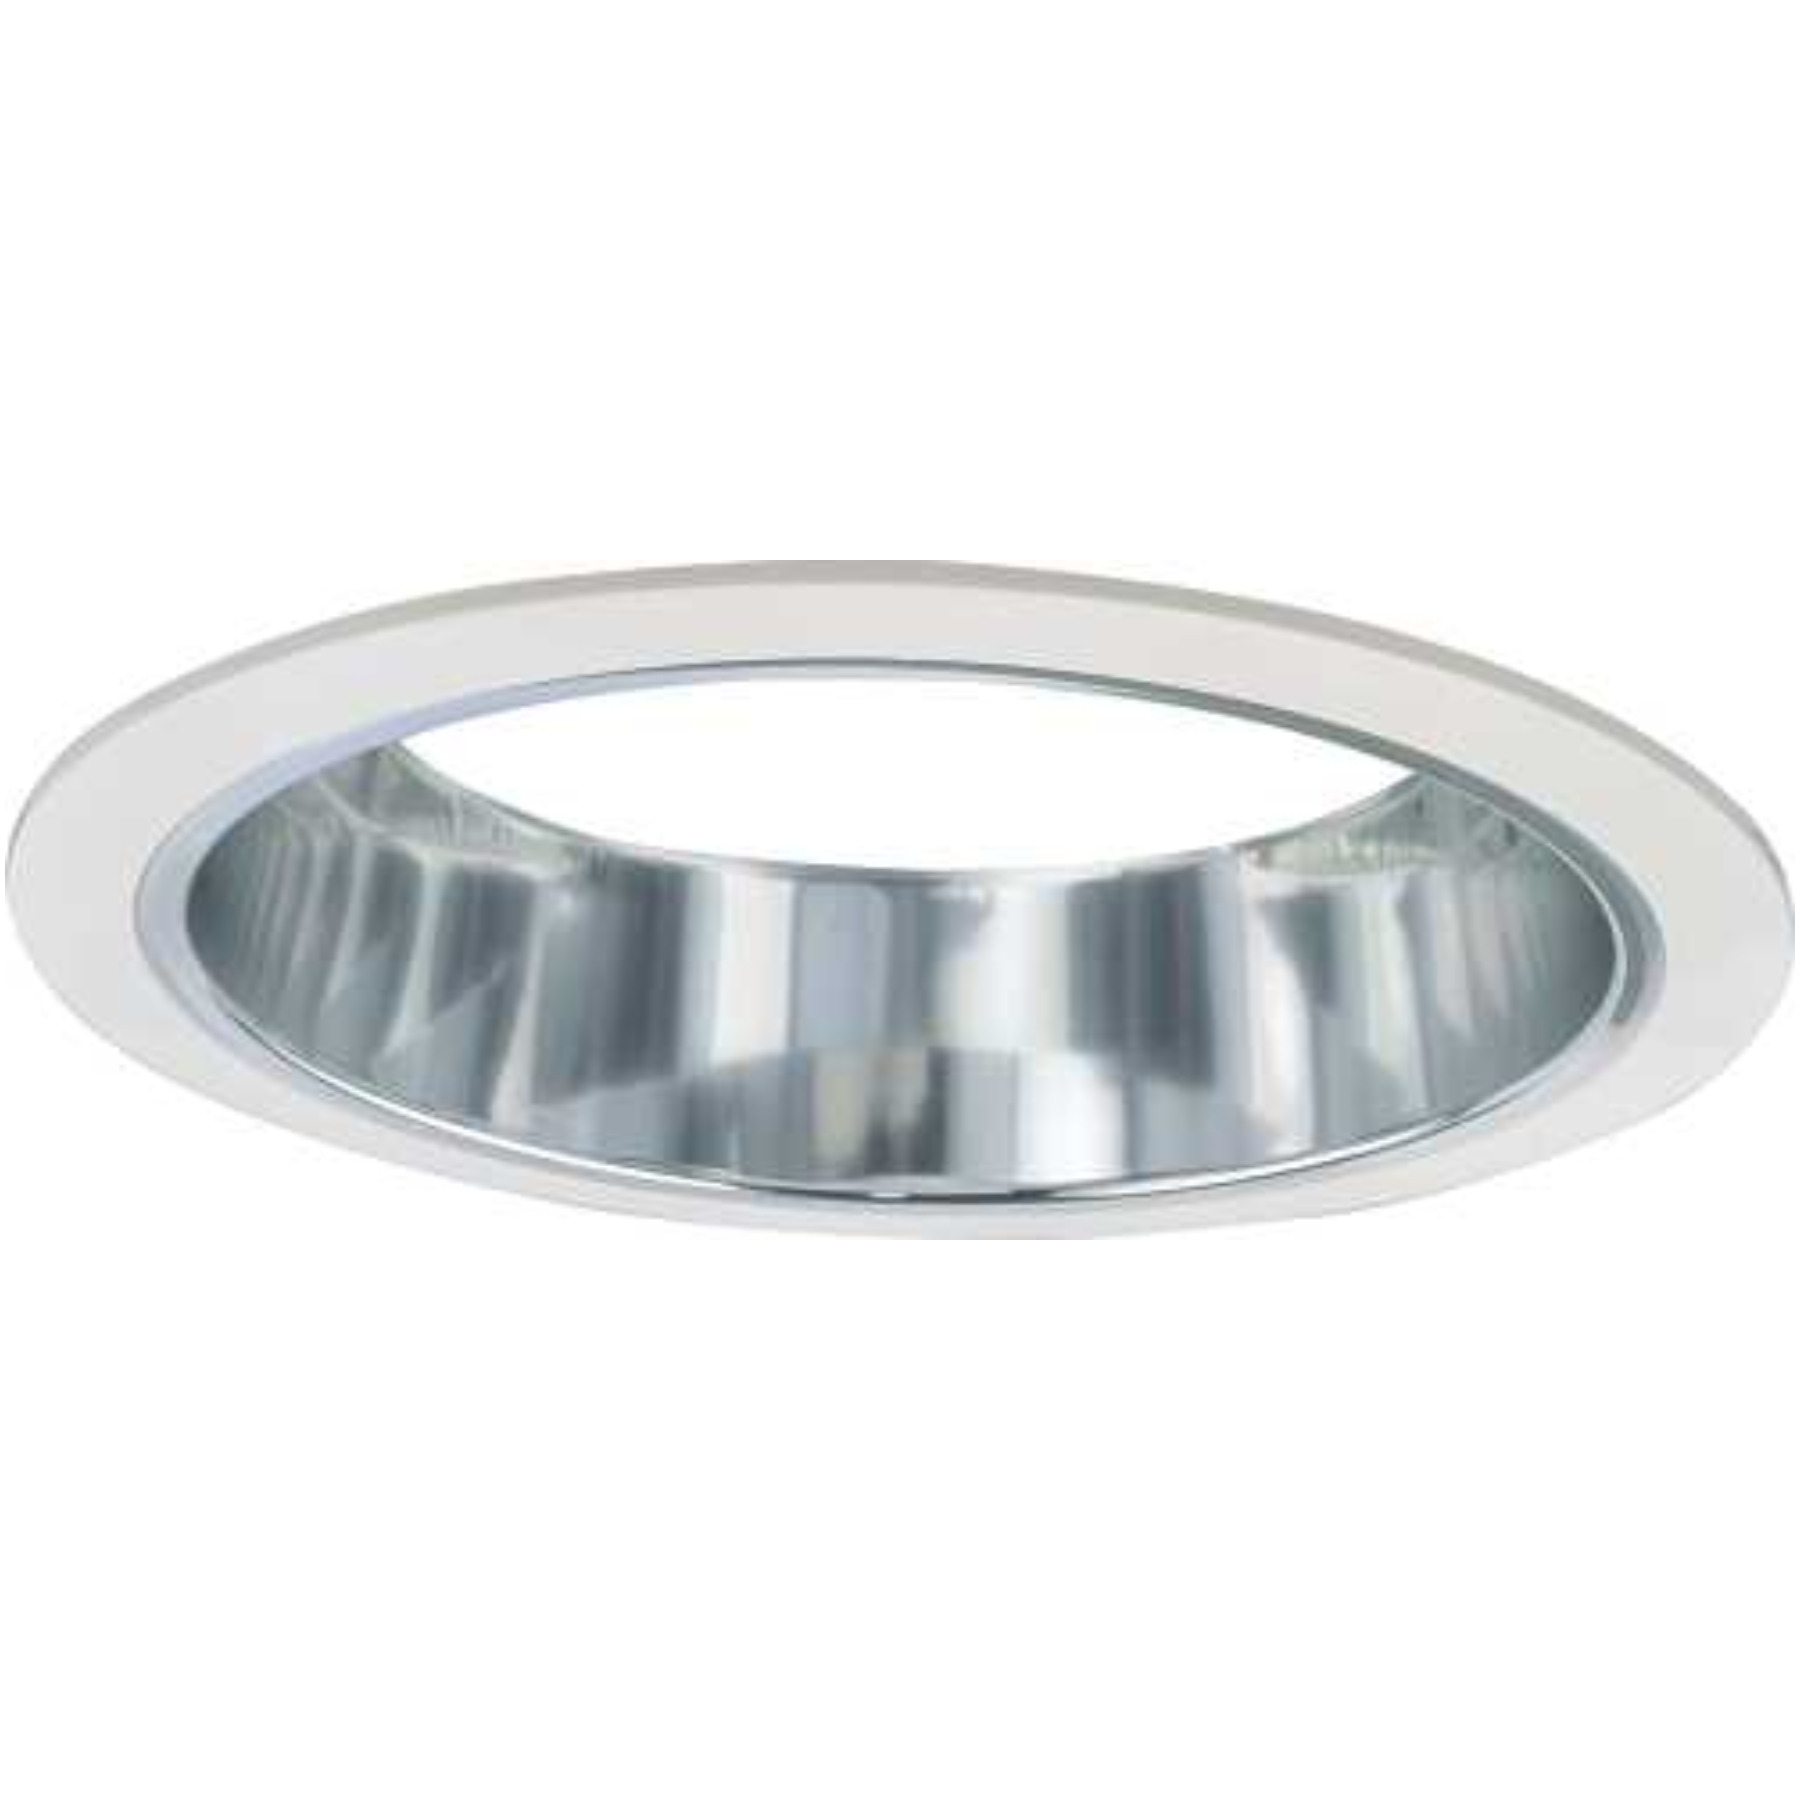 "MONUMENT RECESSED LIGHTING 6"" CHROME ALZAK REFLECTOR WITH WHITE TRIM RINGS"